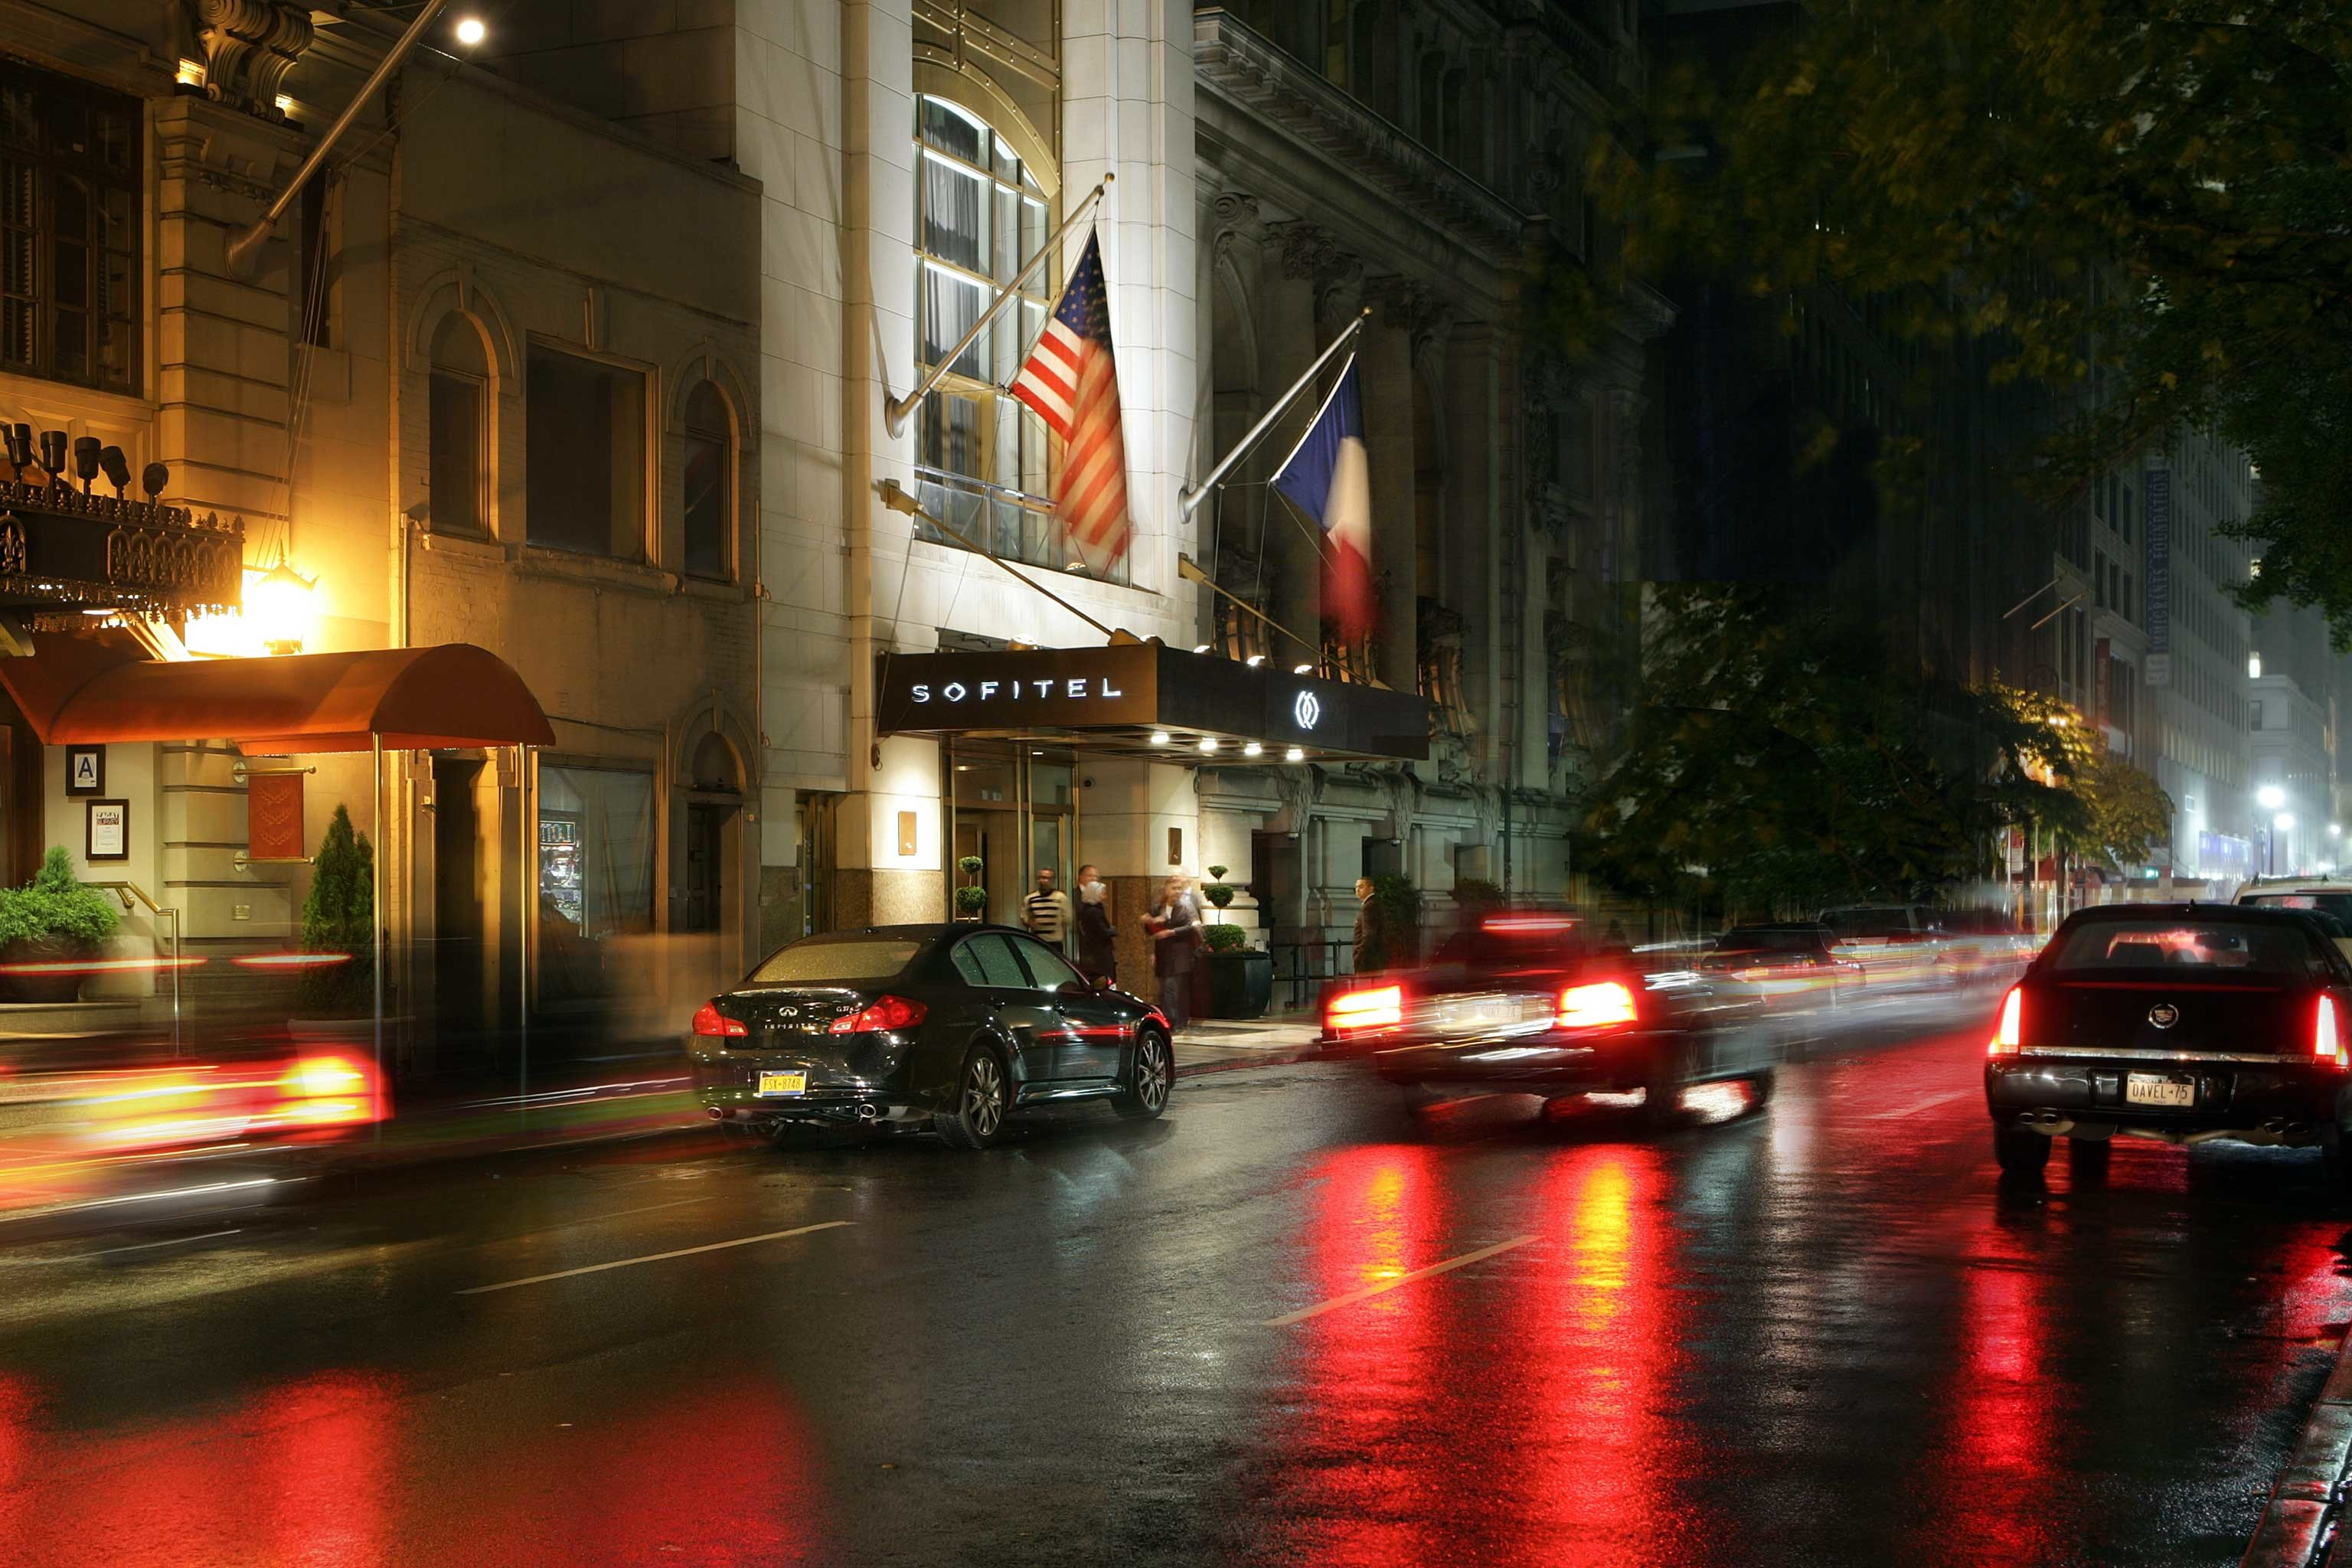 street night road rain traffic light rainy evening darkness cityscape Downtown City wet way blurry